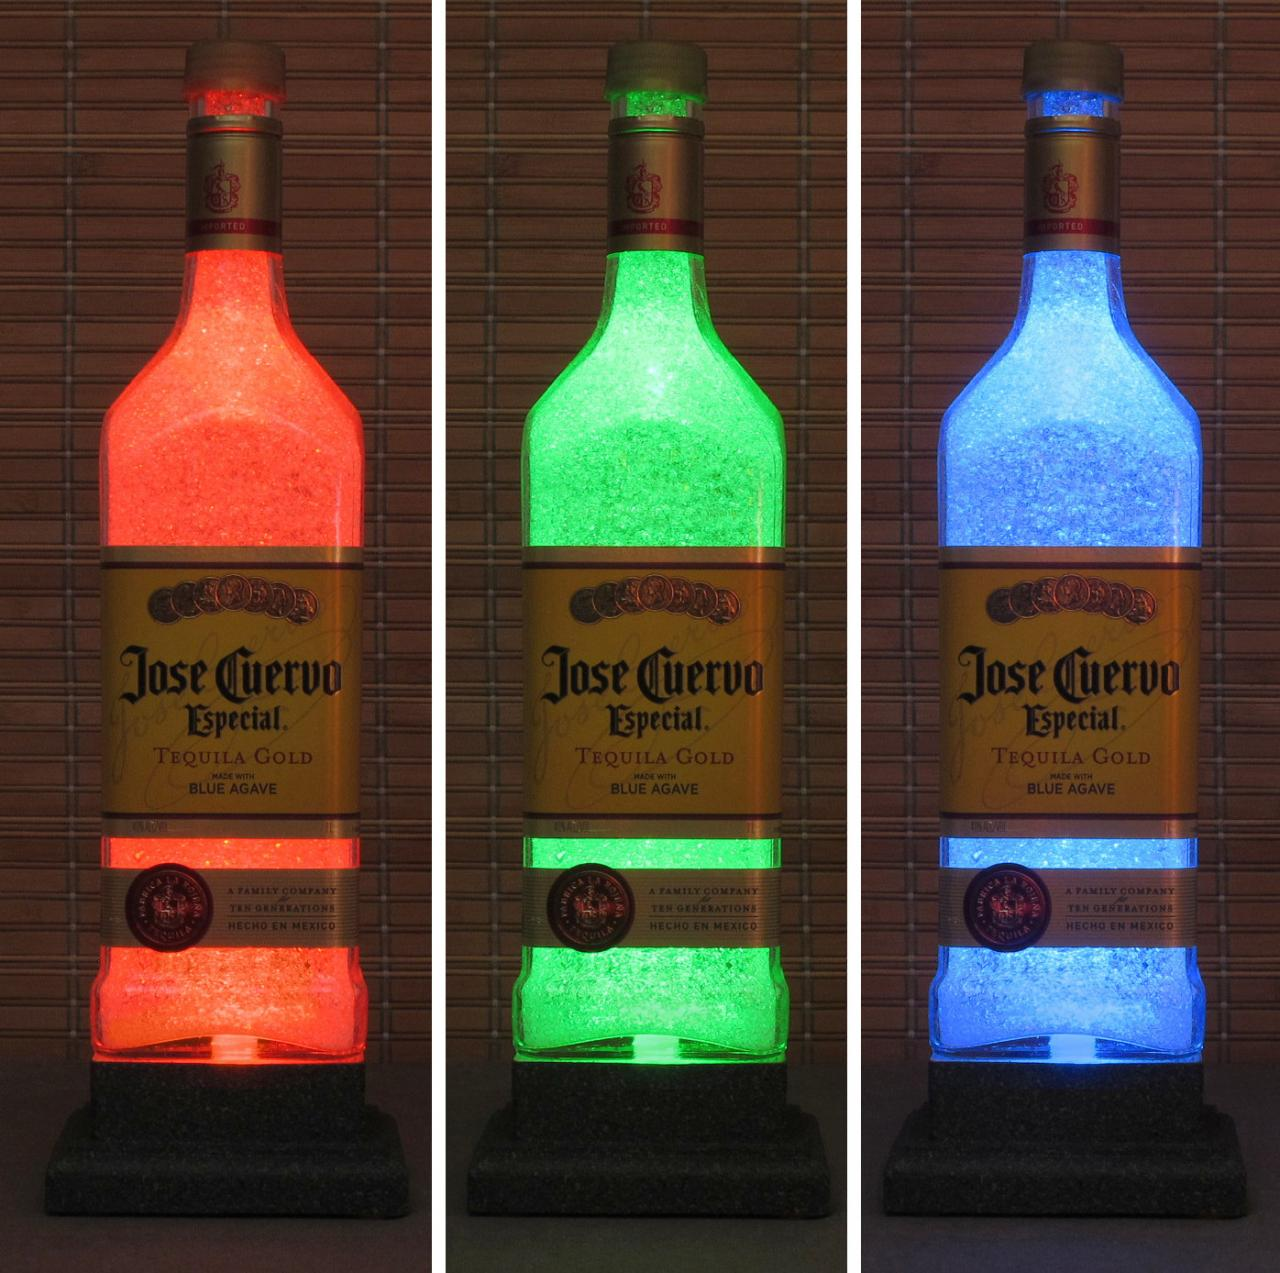 Jose Cuervo Gold Tequila Color Changing LED Remote Controlled Bottle Lamp Light Eco Friendly RGB LED